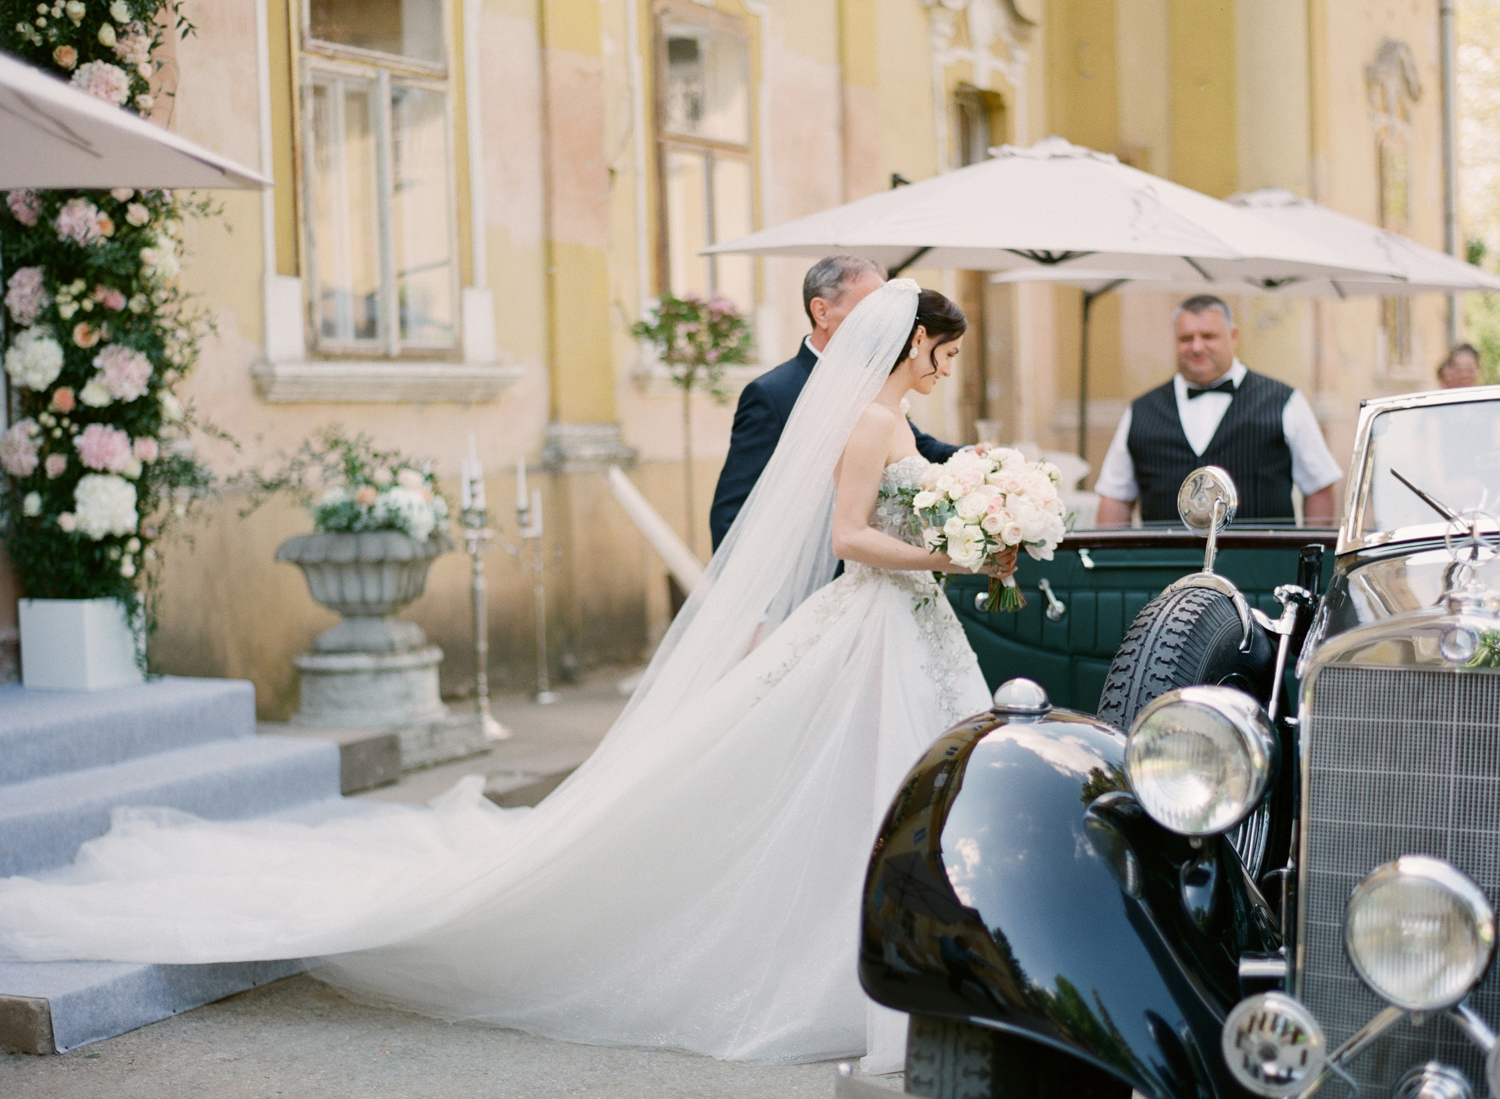 lake_como_wedding_photographer_tuscany_wedding_photographer_nikol_bodnarova_07.JPG